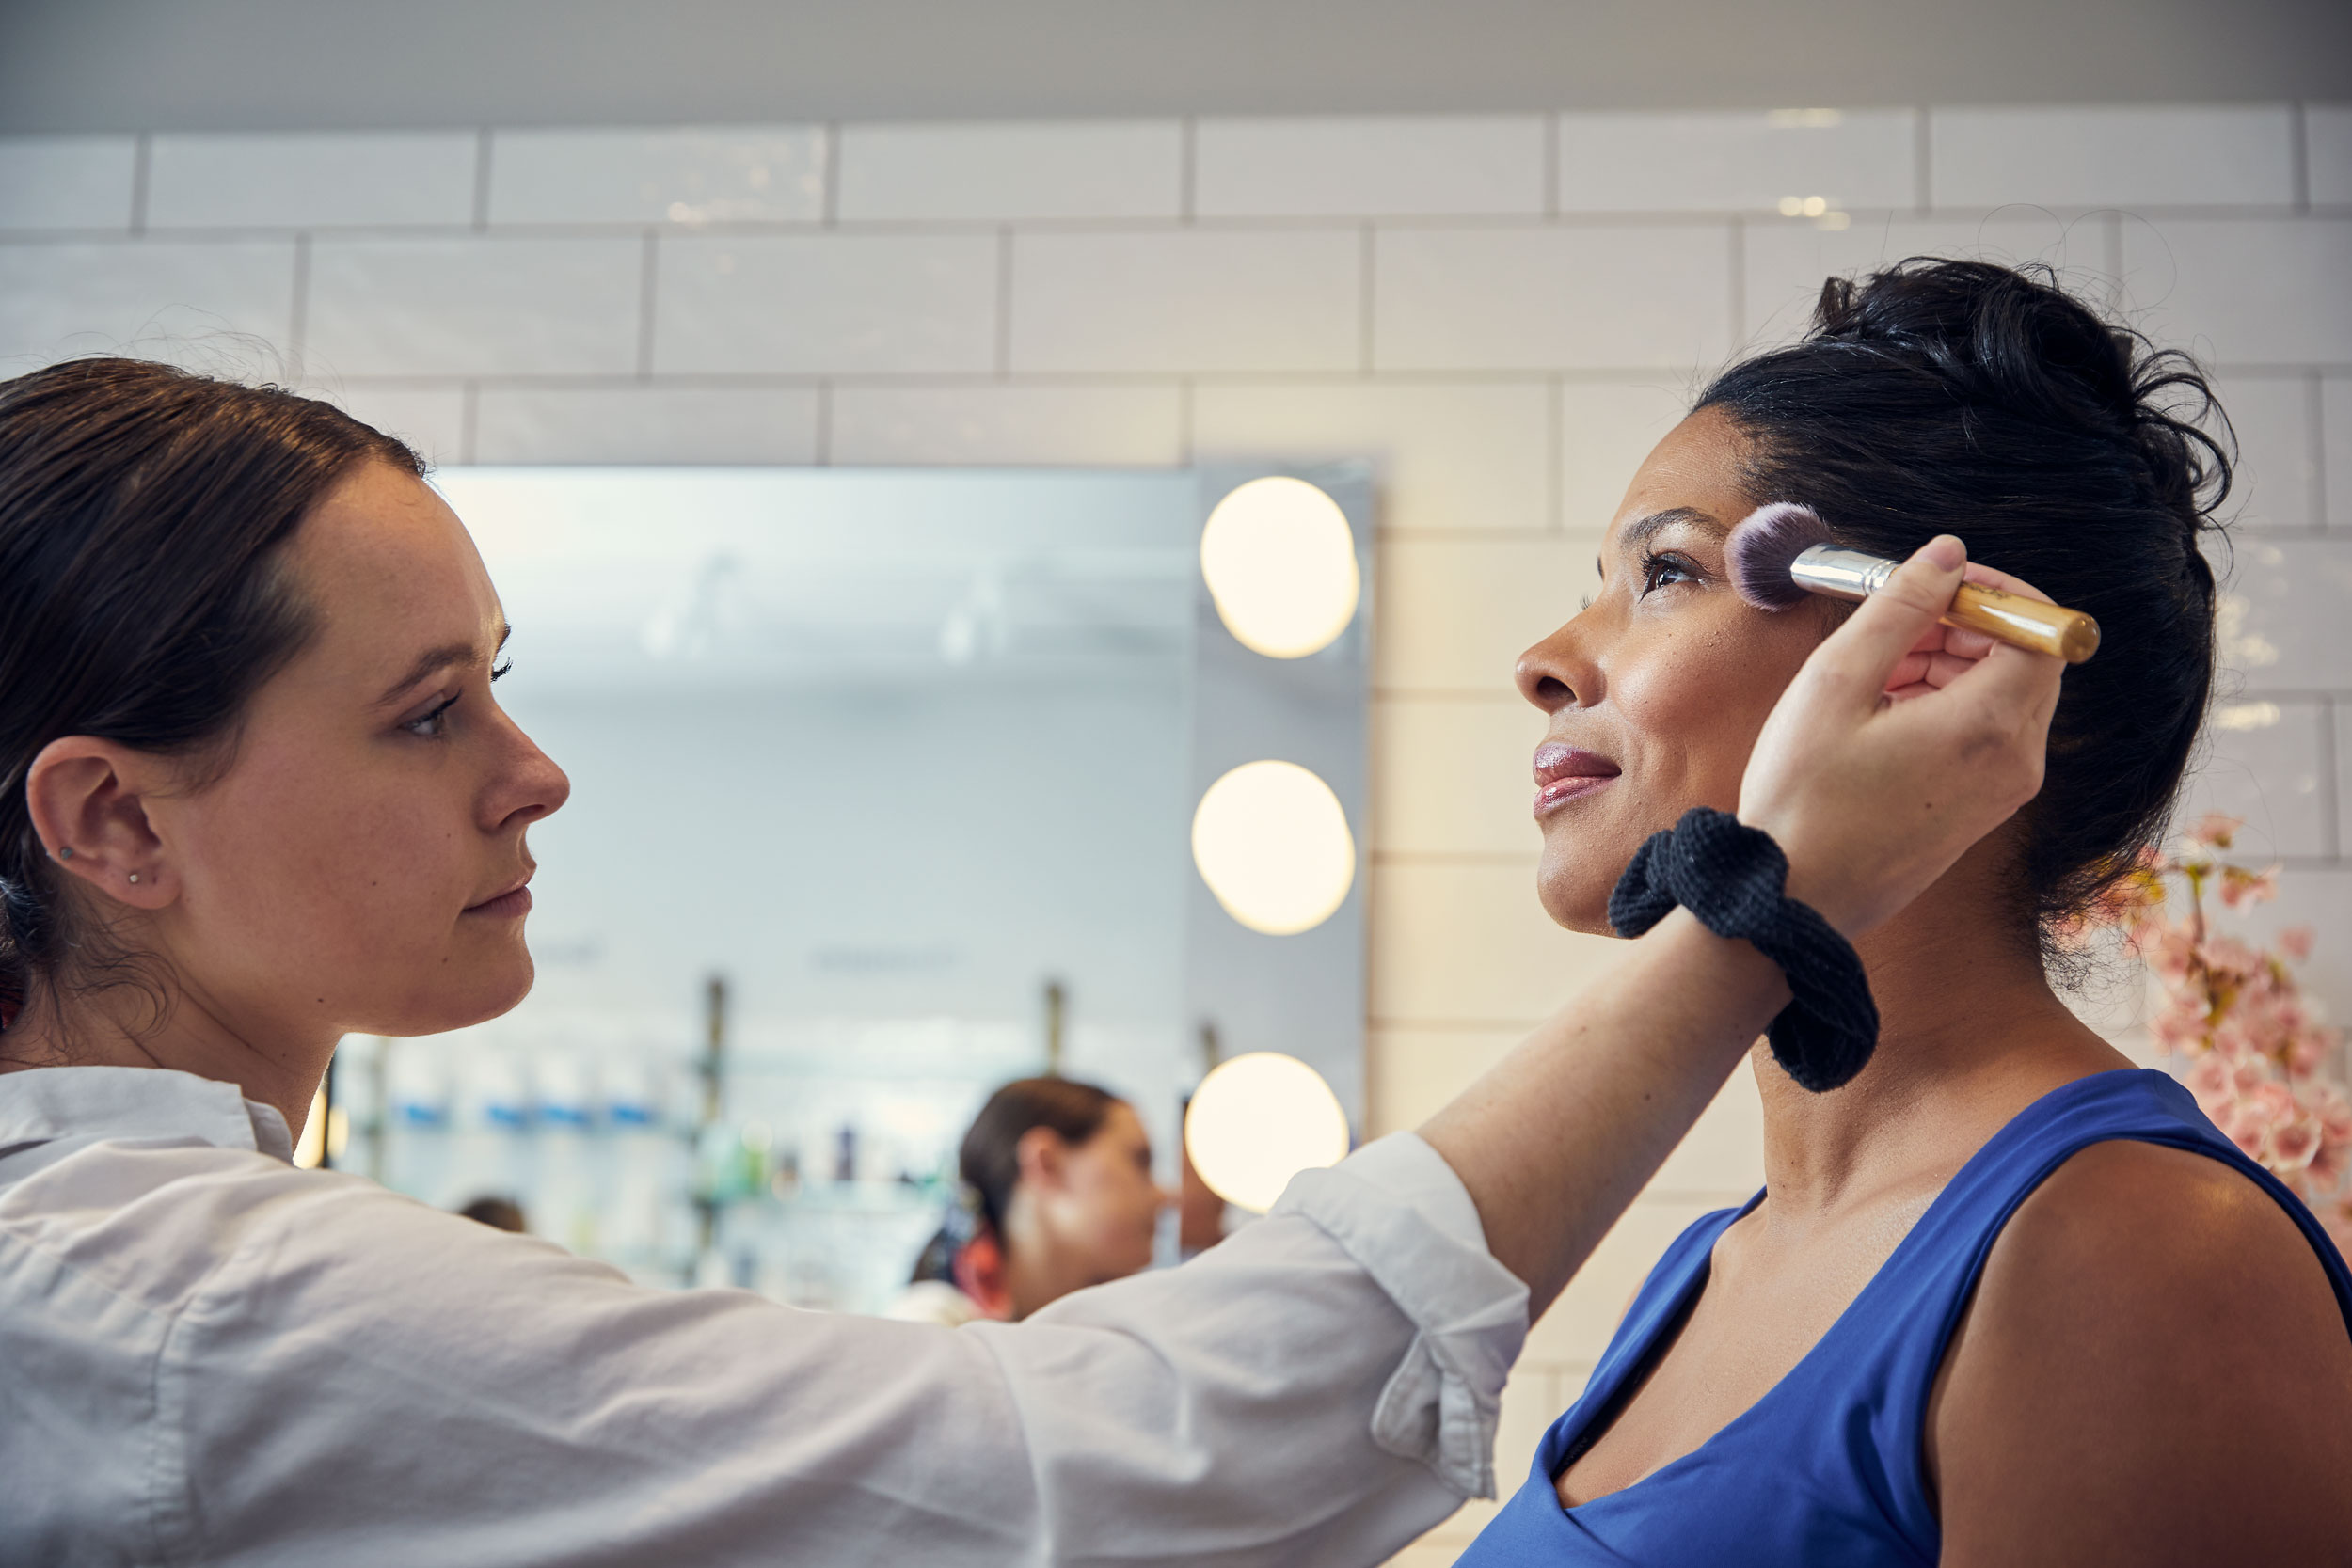 woman applying makeup on adult woman, washington dc commercial photography